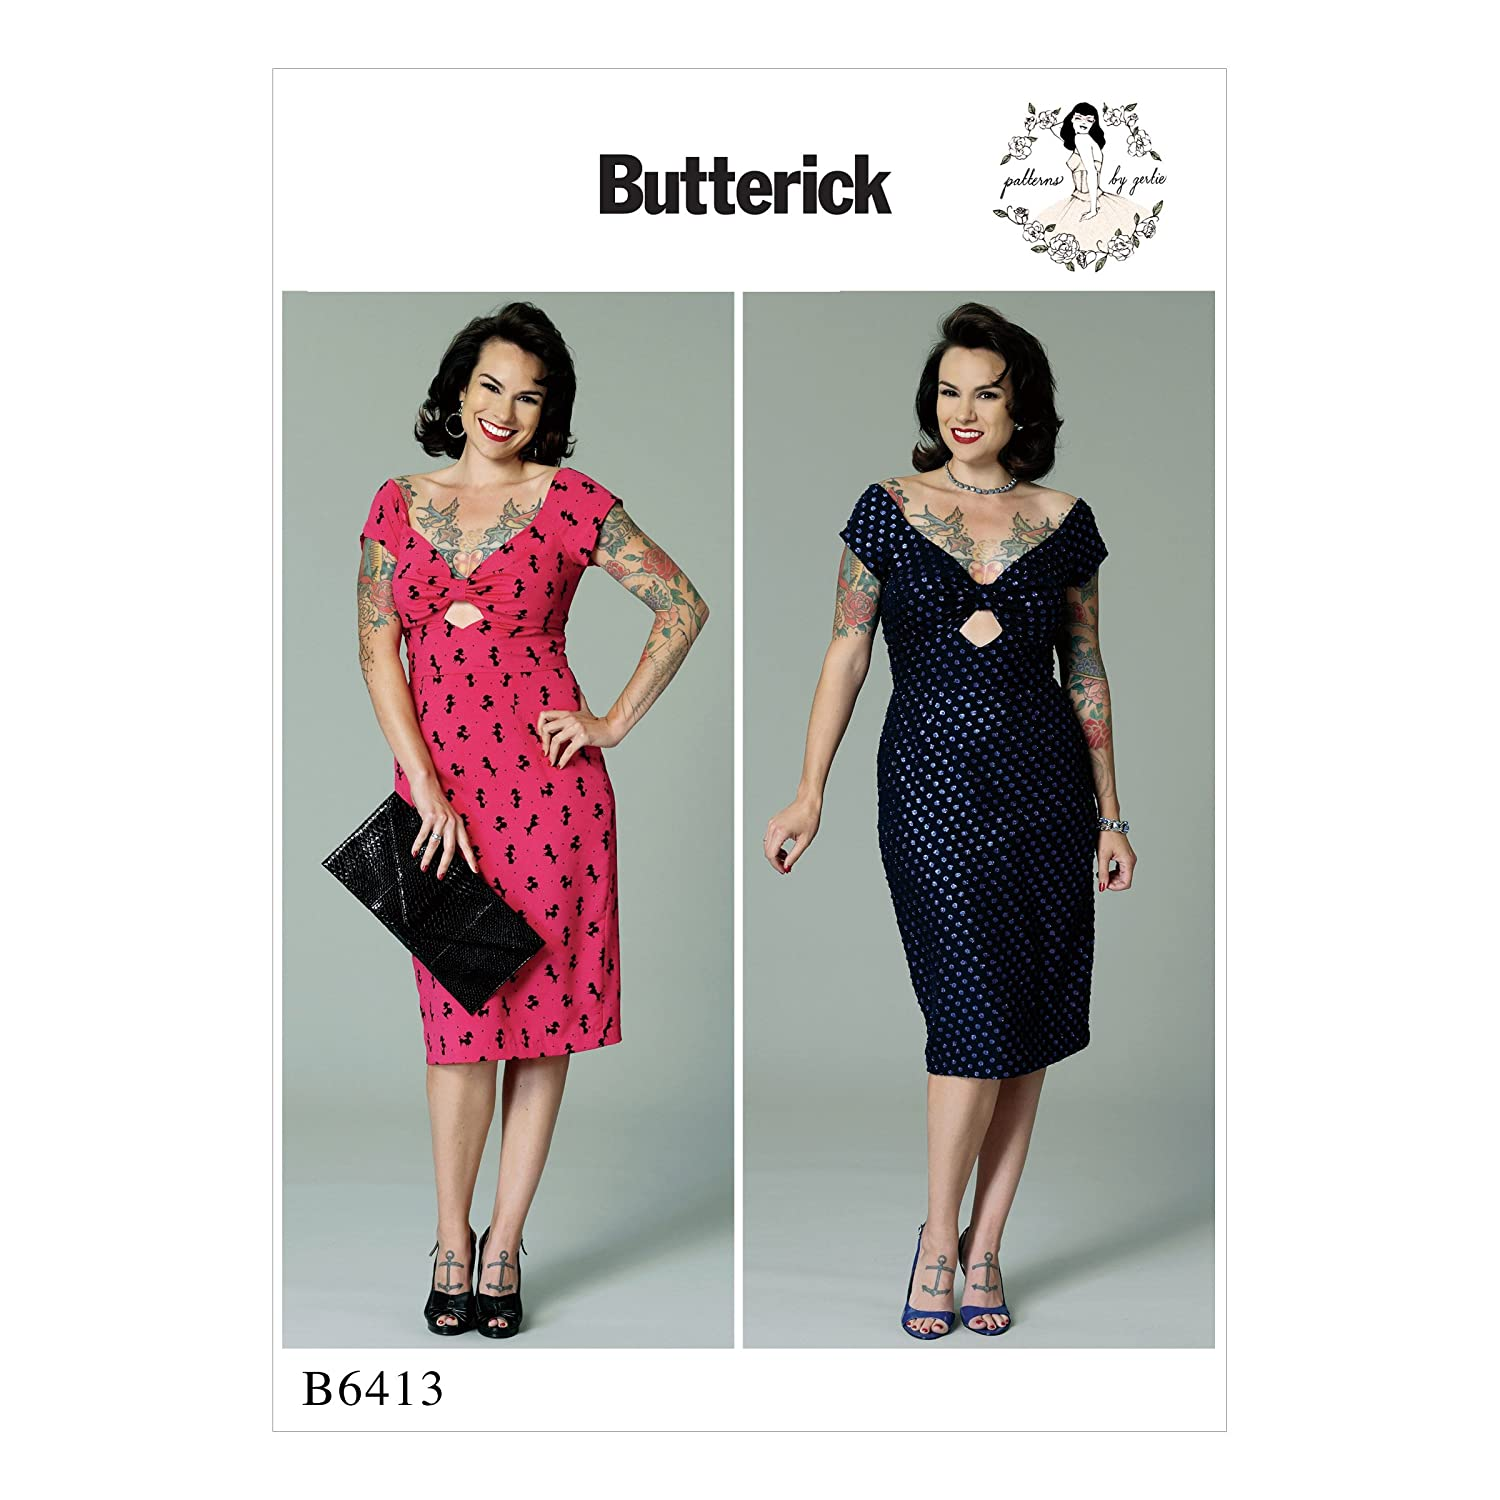 1950s Sewing Patterns- Dresses, Skirts, Tops, Pants Butterick B6413 A5 Misses Gathered-Front Keyhole Dress Pattern by Gertie Size 6-8-10-12-14 $13.51 AT vintagedancer.com